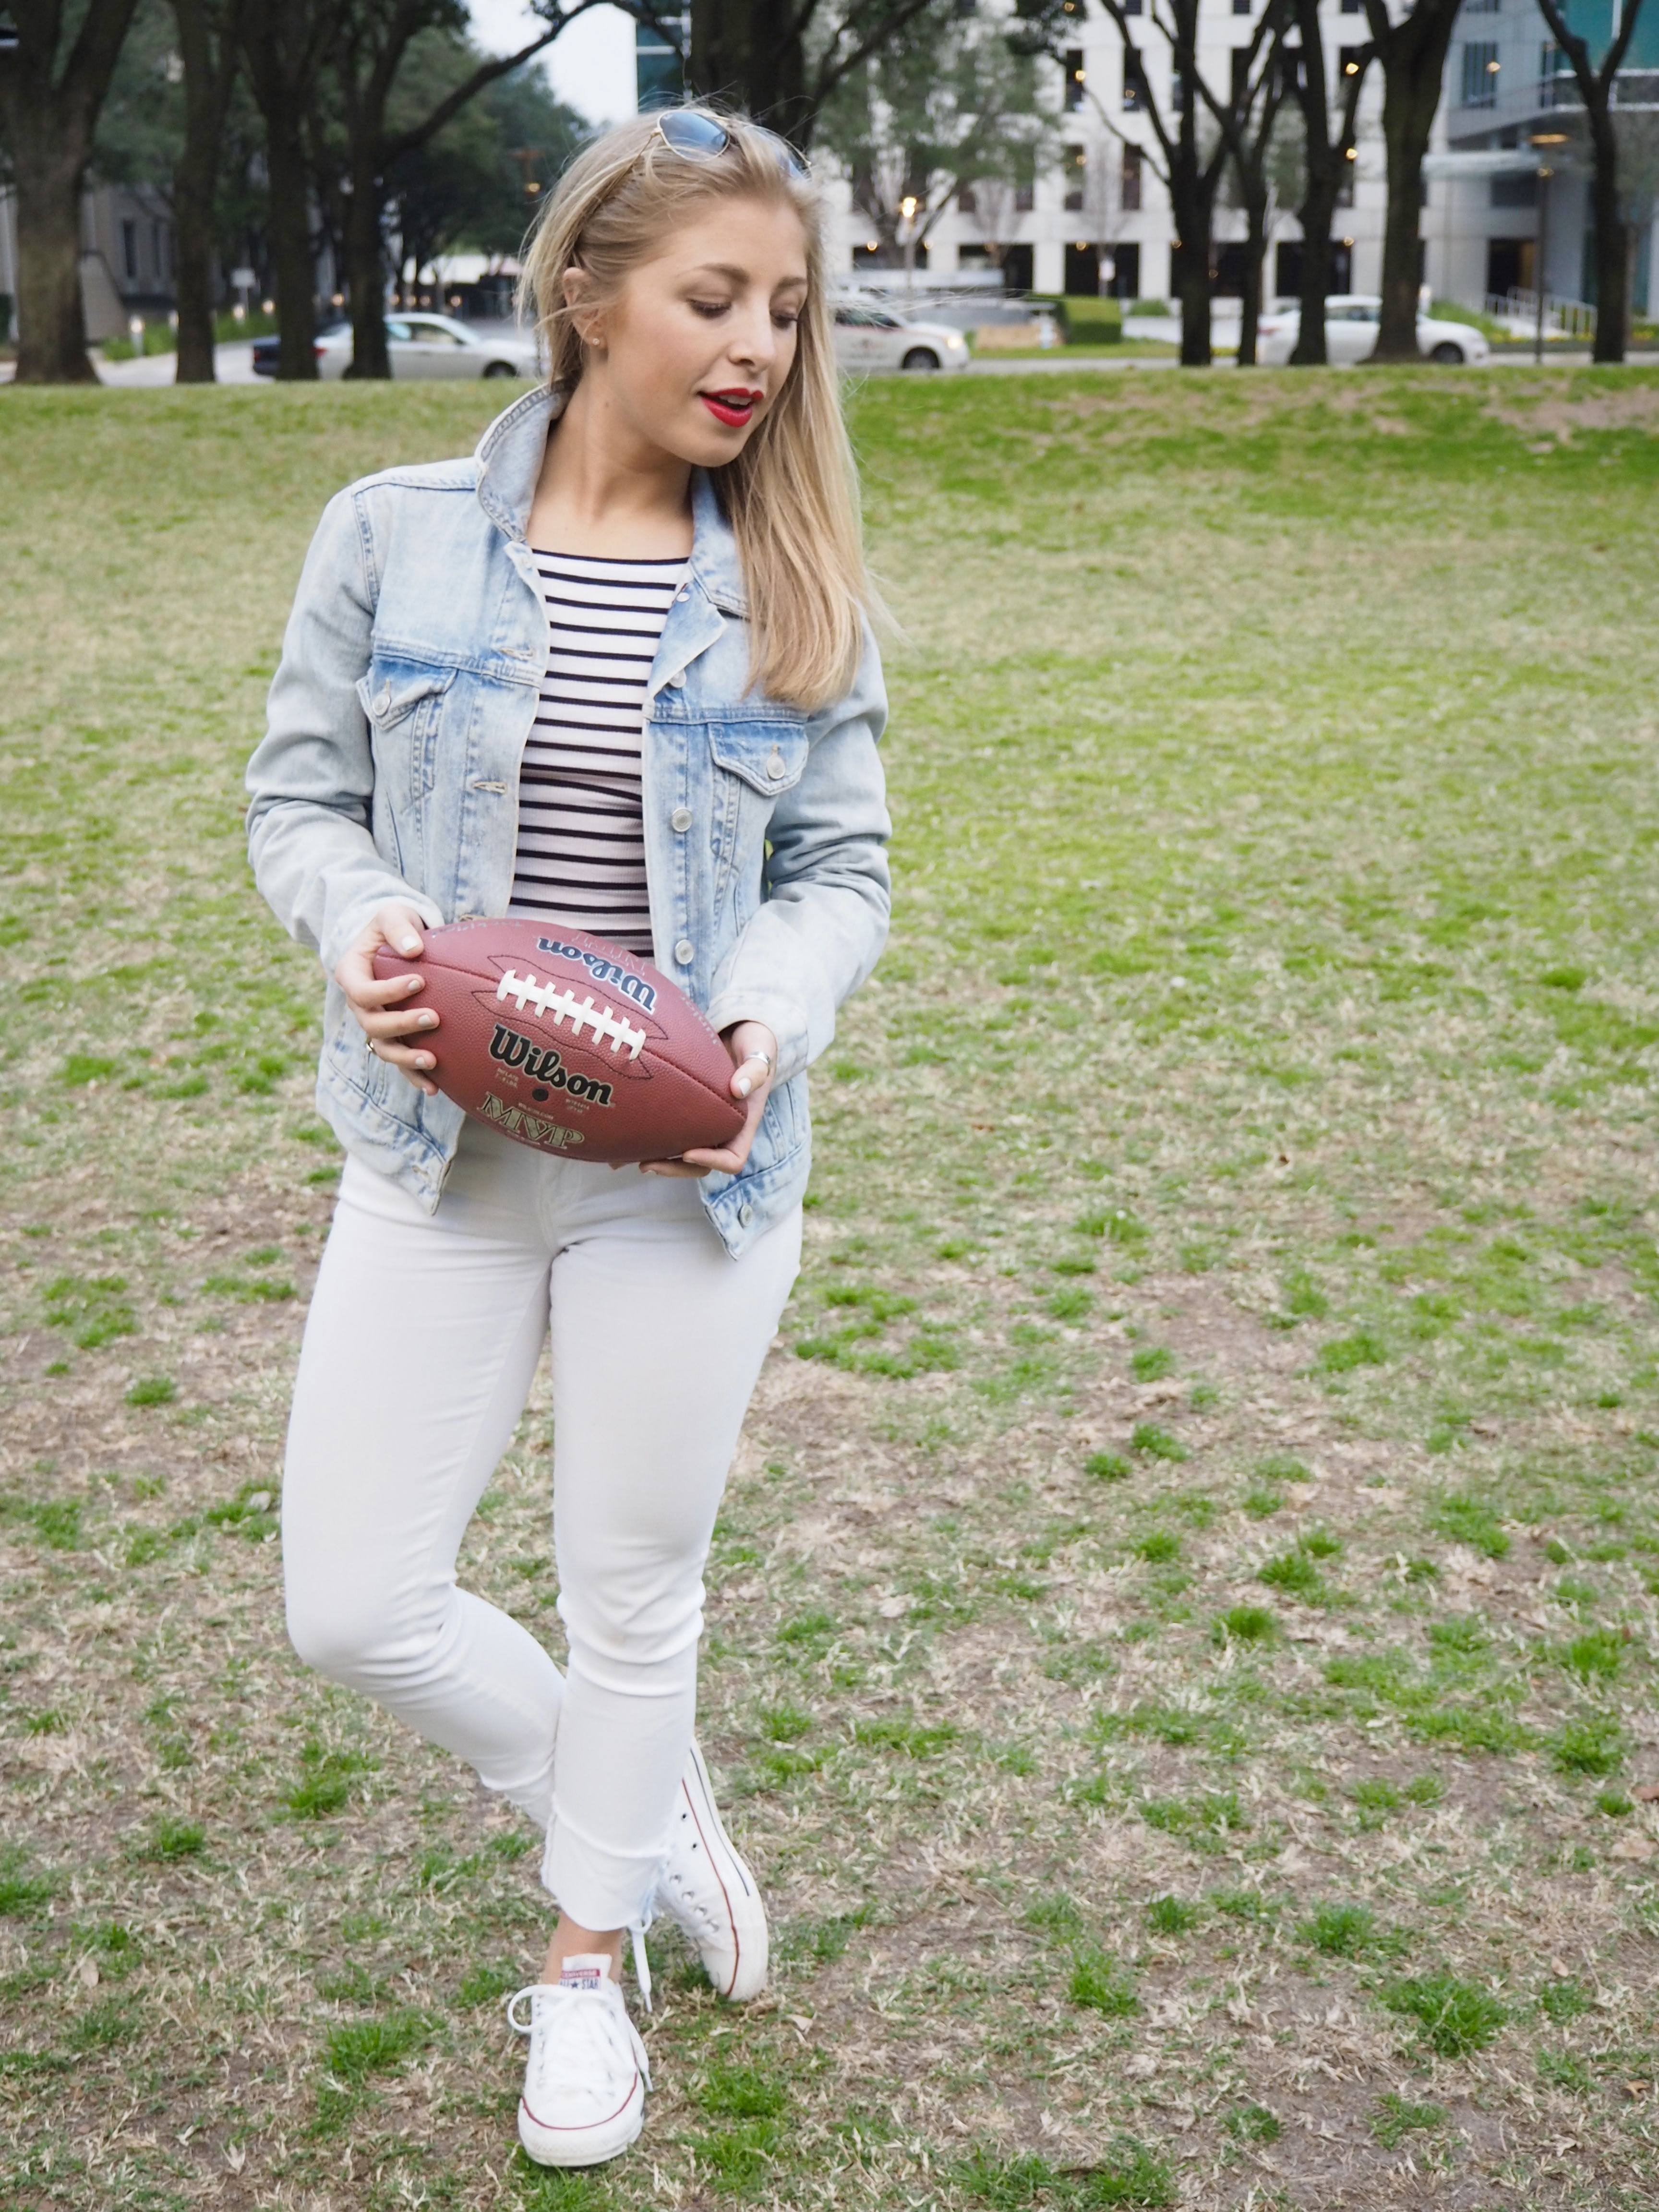 Superbowl outfit